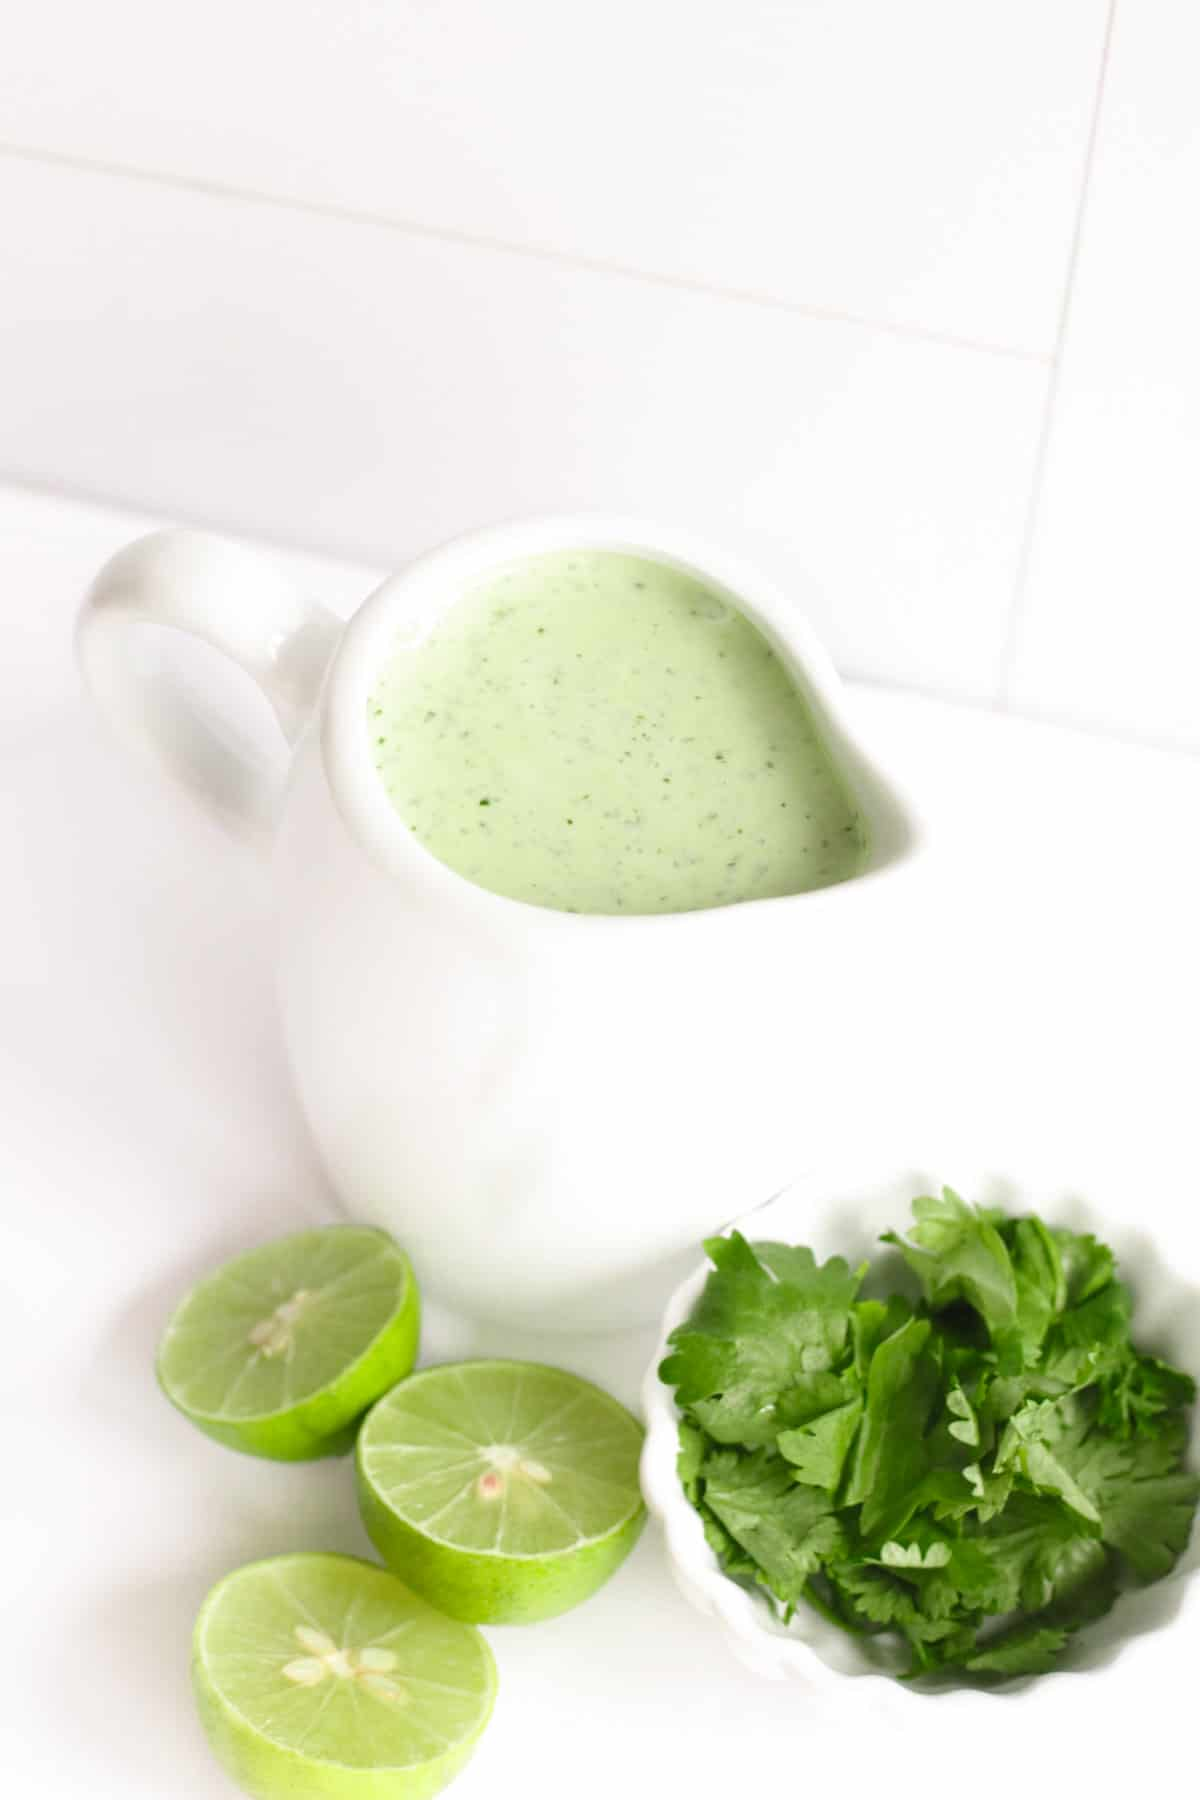 a container of cilantro lime jalapeno ranch salad dressing with a bowl of cilantro and lime halves next to it on a table